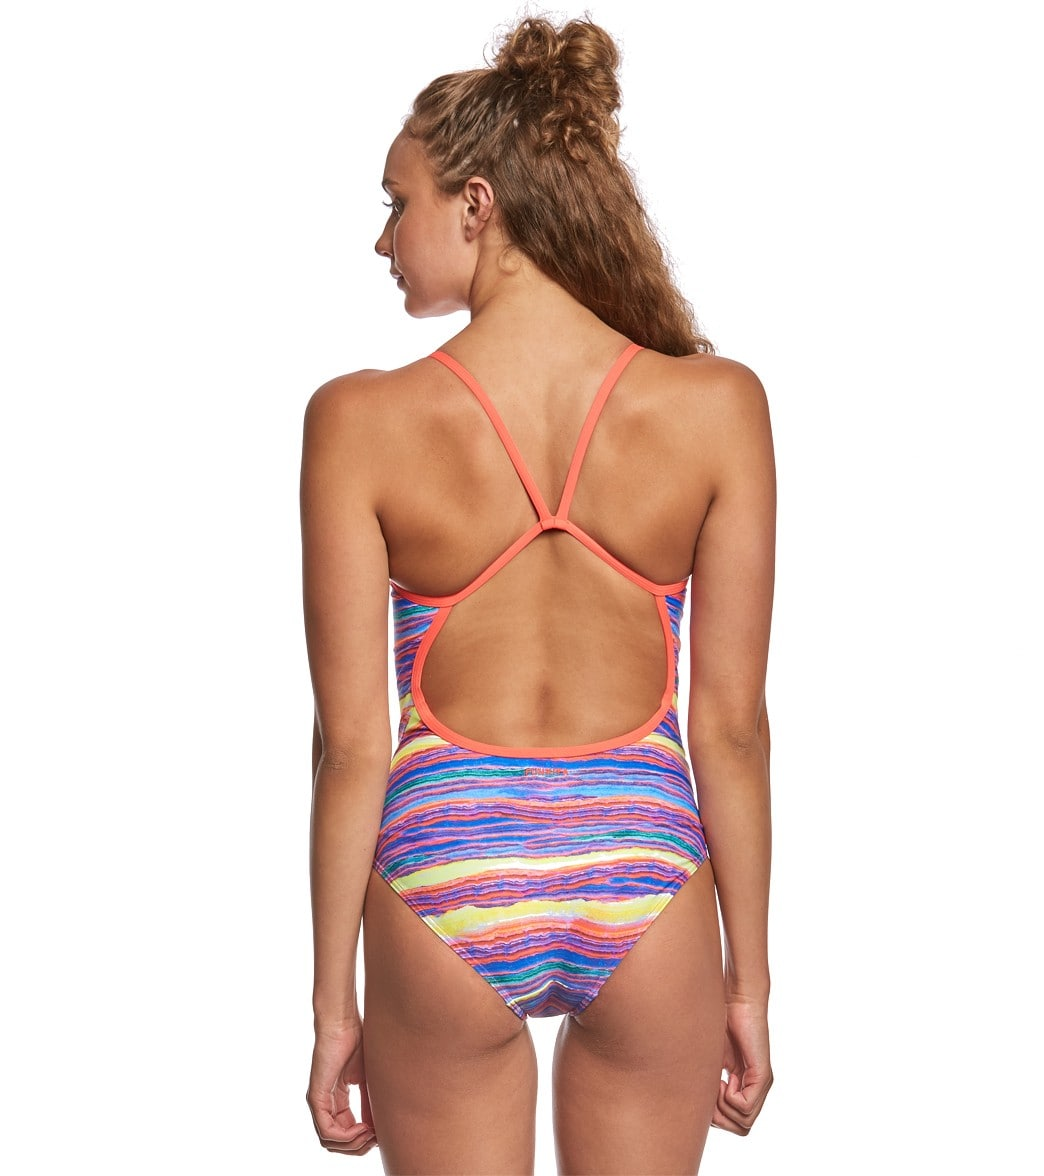 1da34905bf112 Funkita Women's Crystal Wave Single Strap One Piece Swimsuit at ...